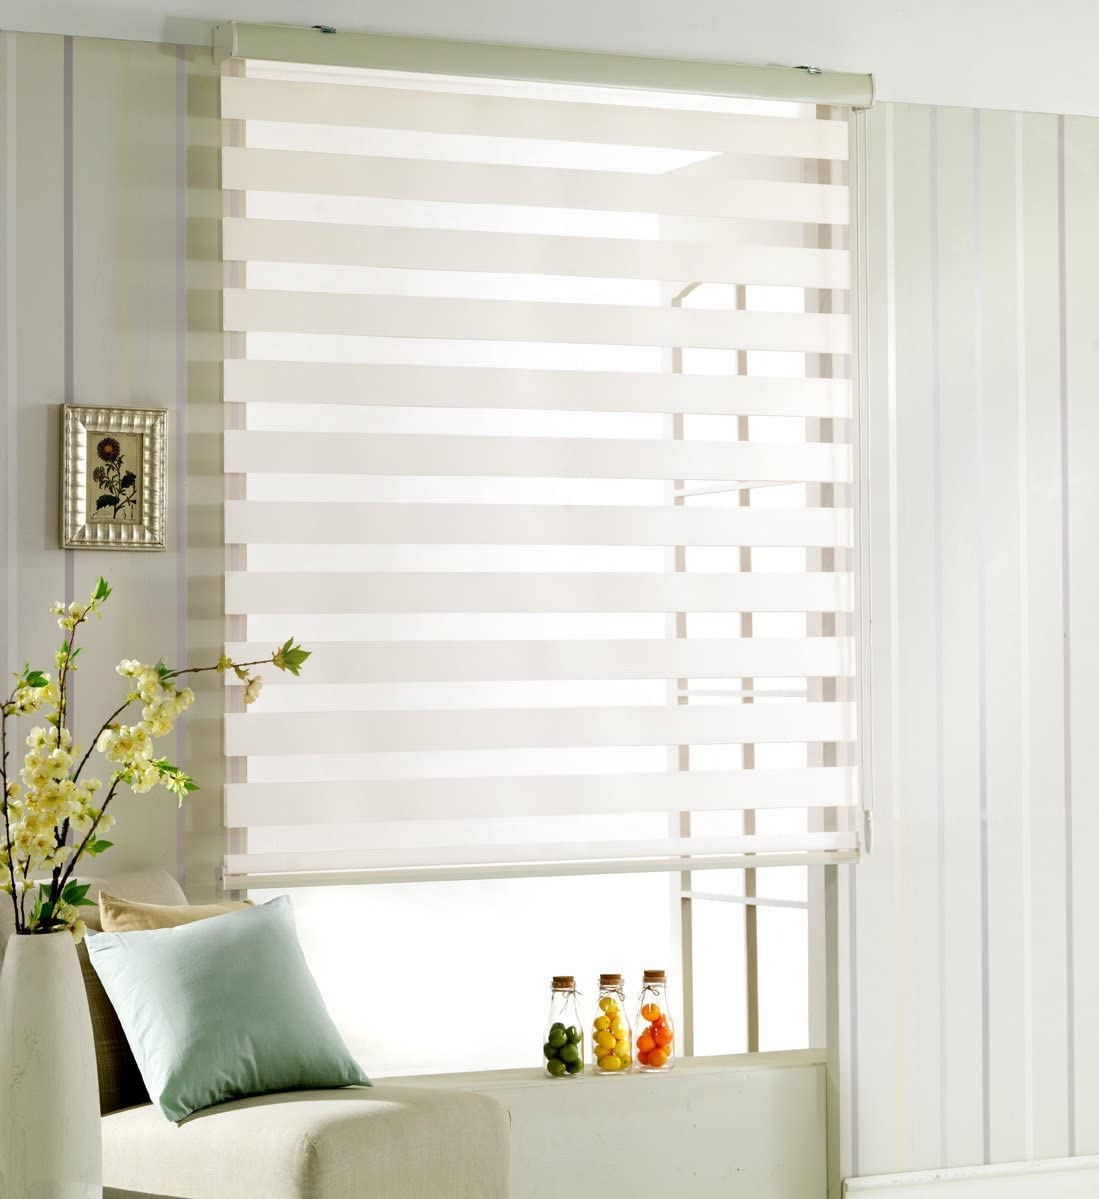 Custom Cut to Size, Winsharp Woodlook 64, White_ivory, W 79 x H 64 inch Zebra Roller Blinds, Dual Layer Shades, Sheer or Privacy Light Control, Day and Night Window Drapes, 20 to 110 inch wide